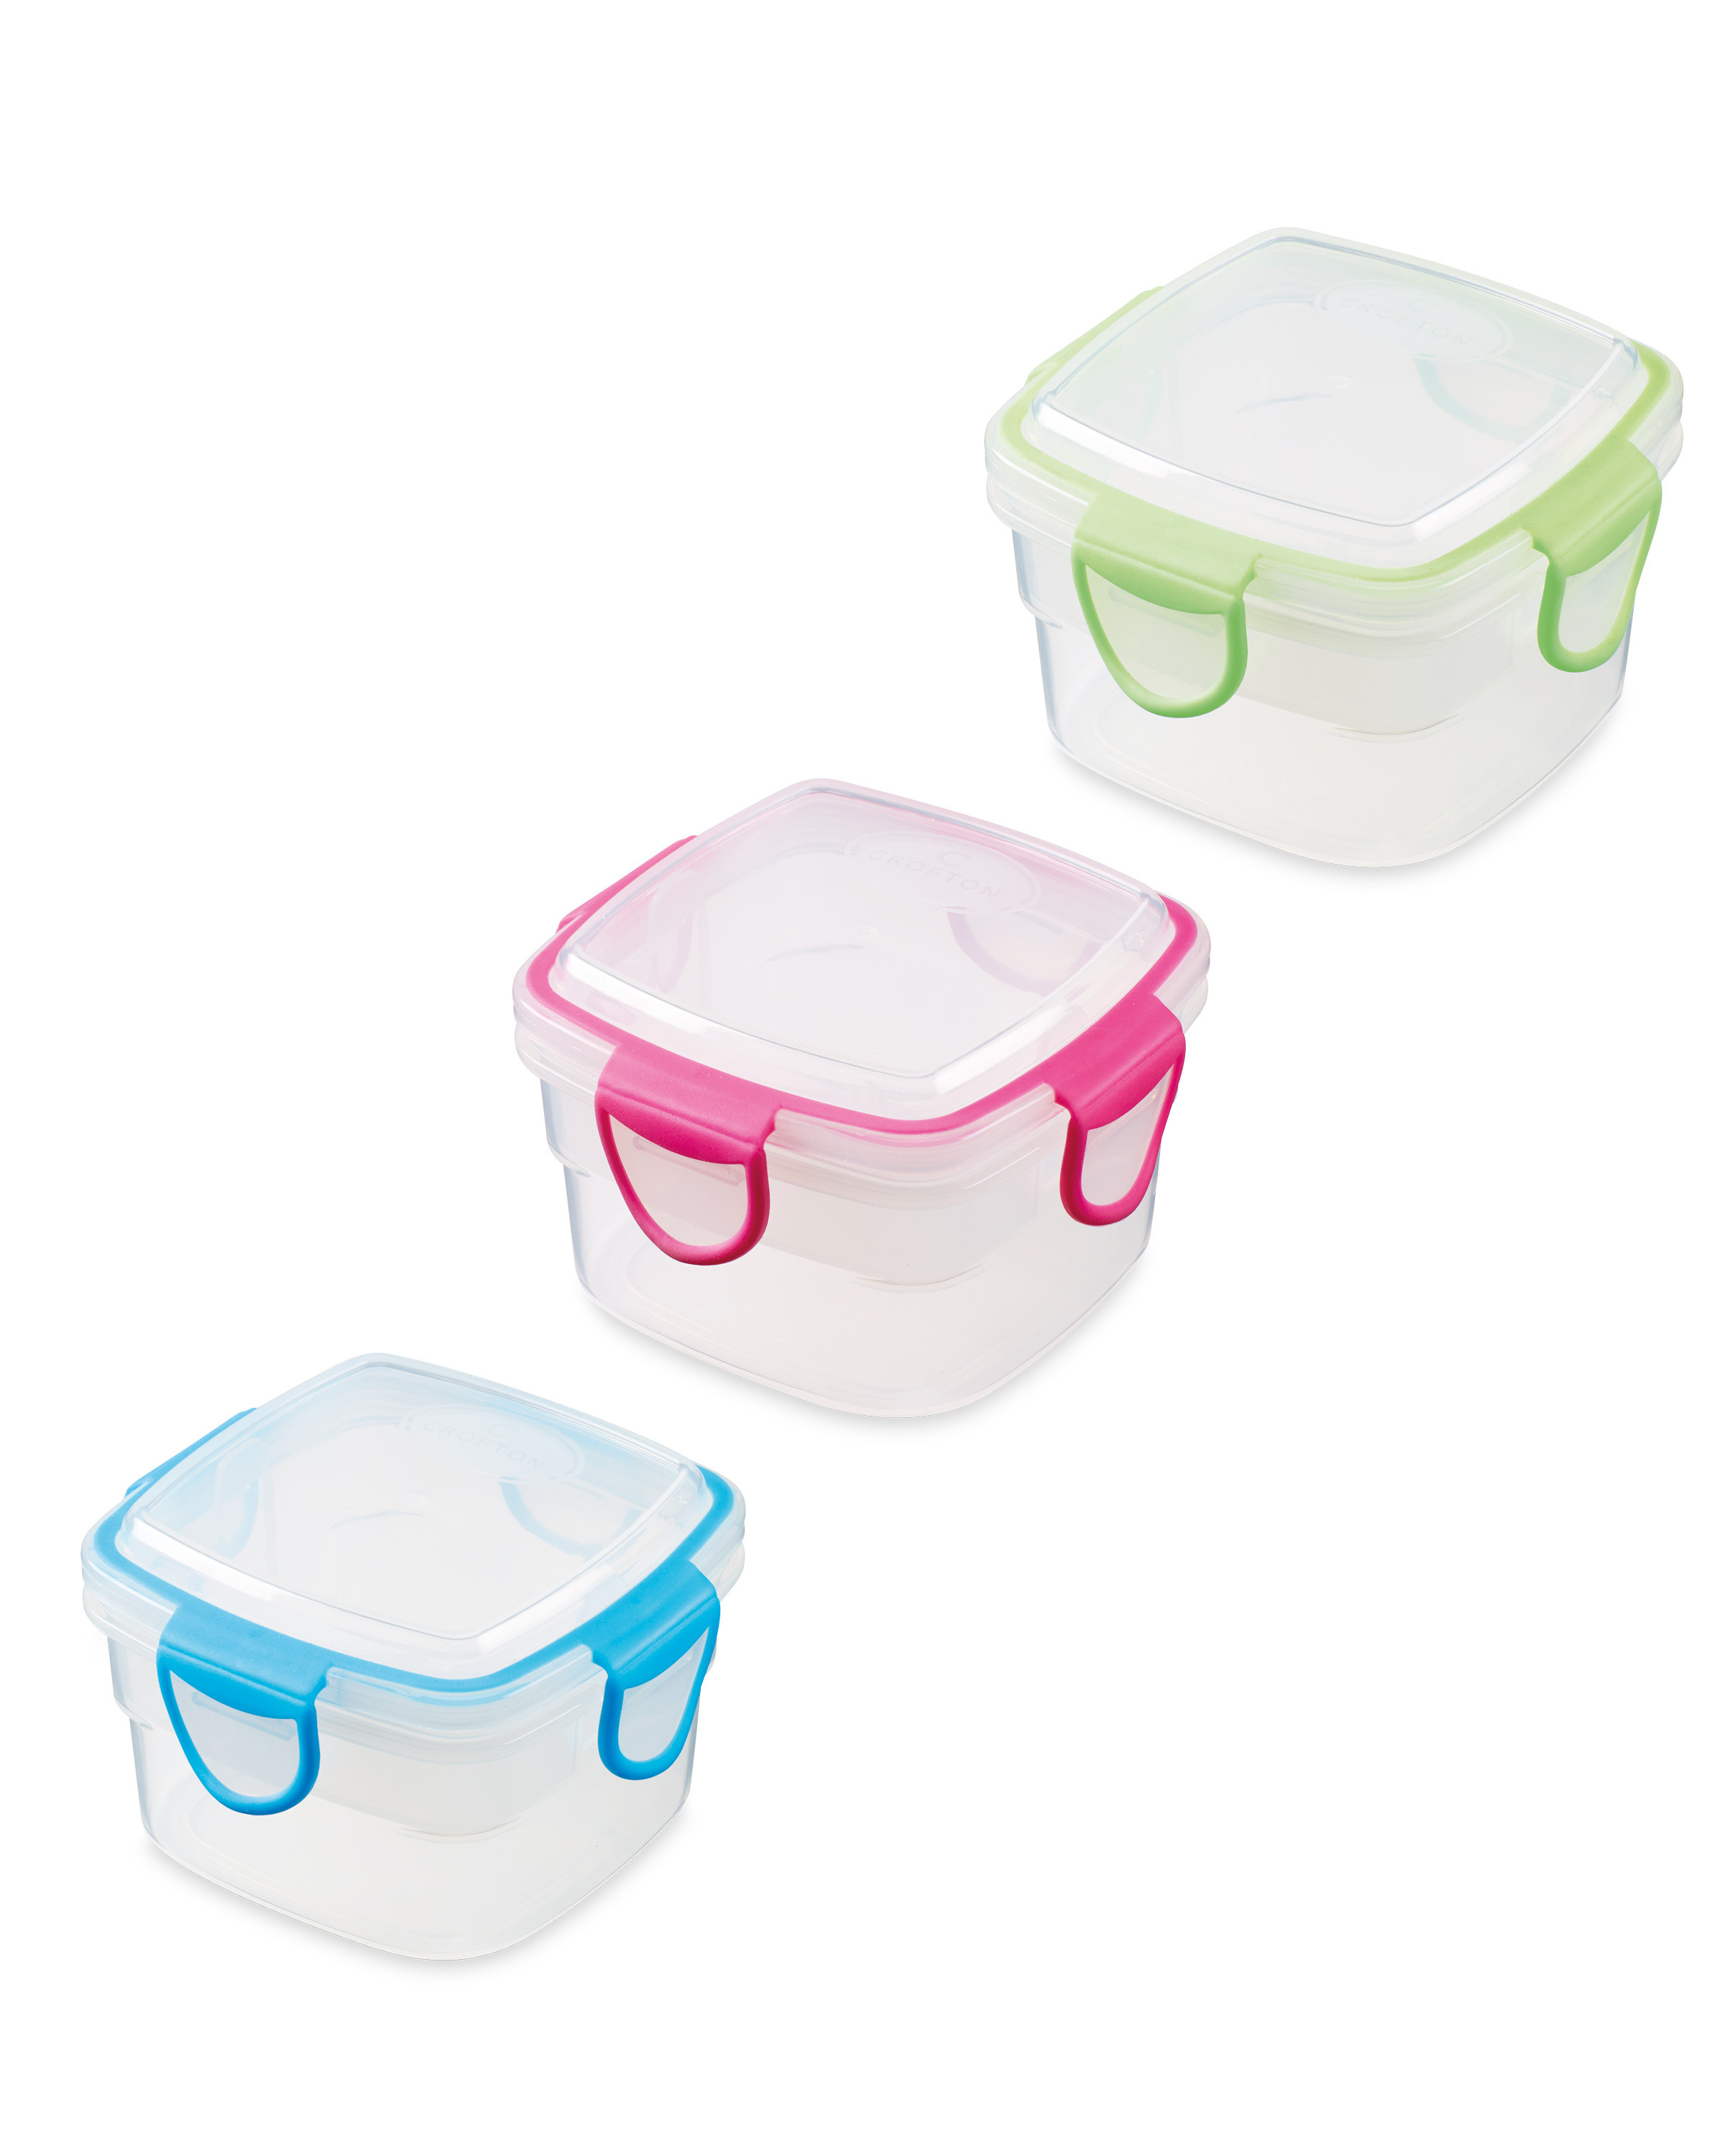 Crofton Snack Container